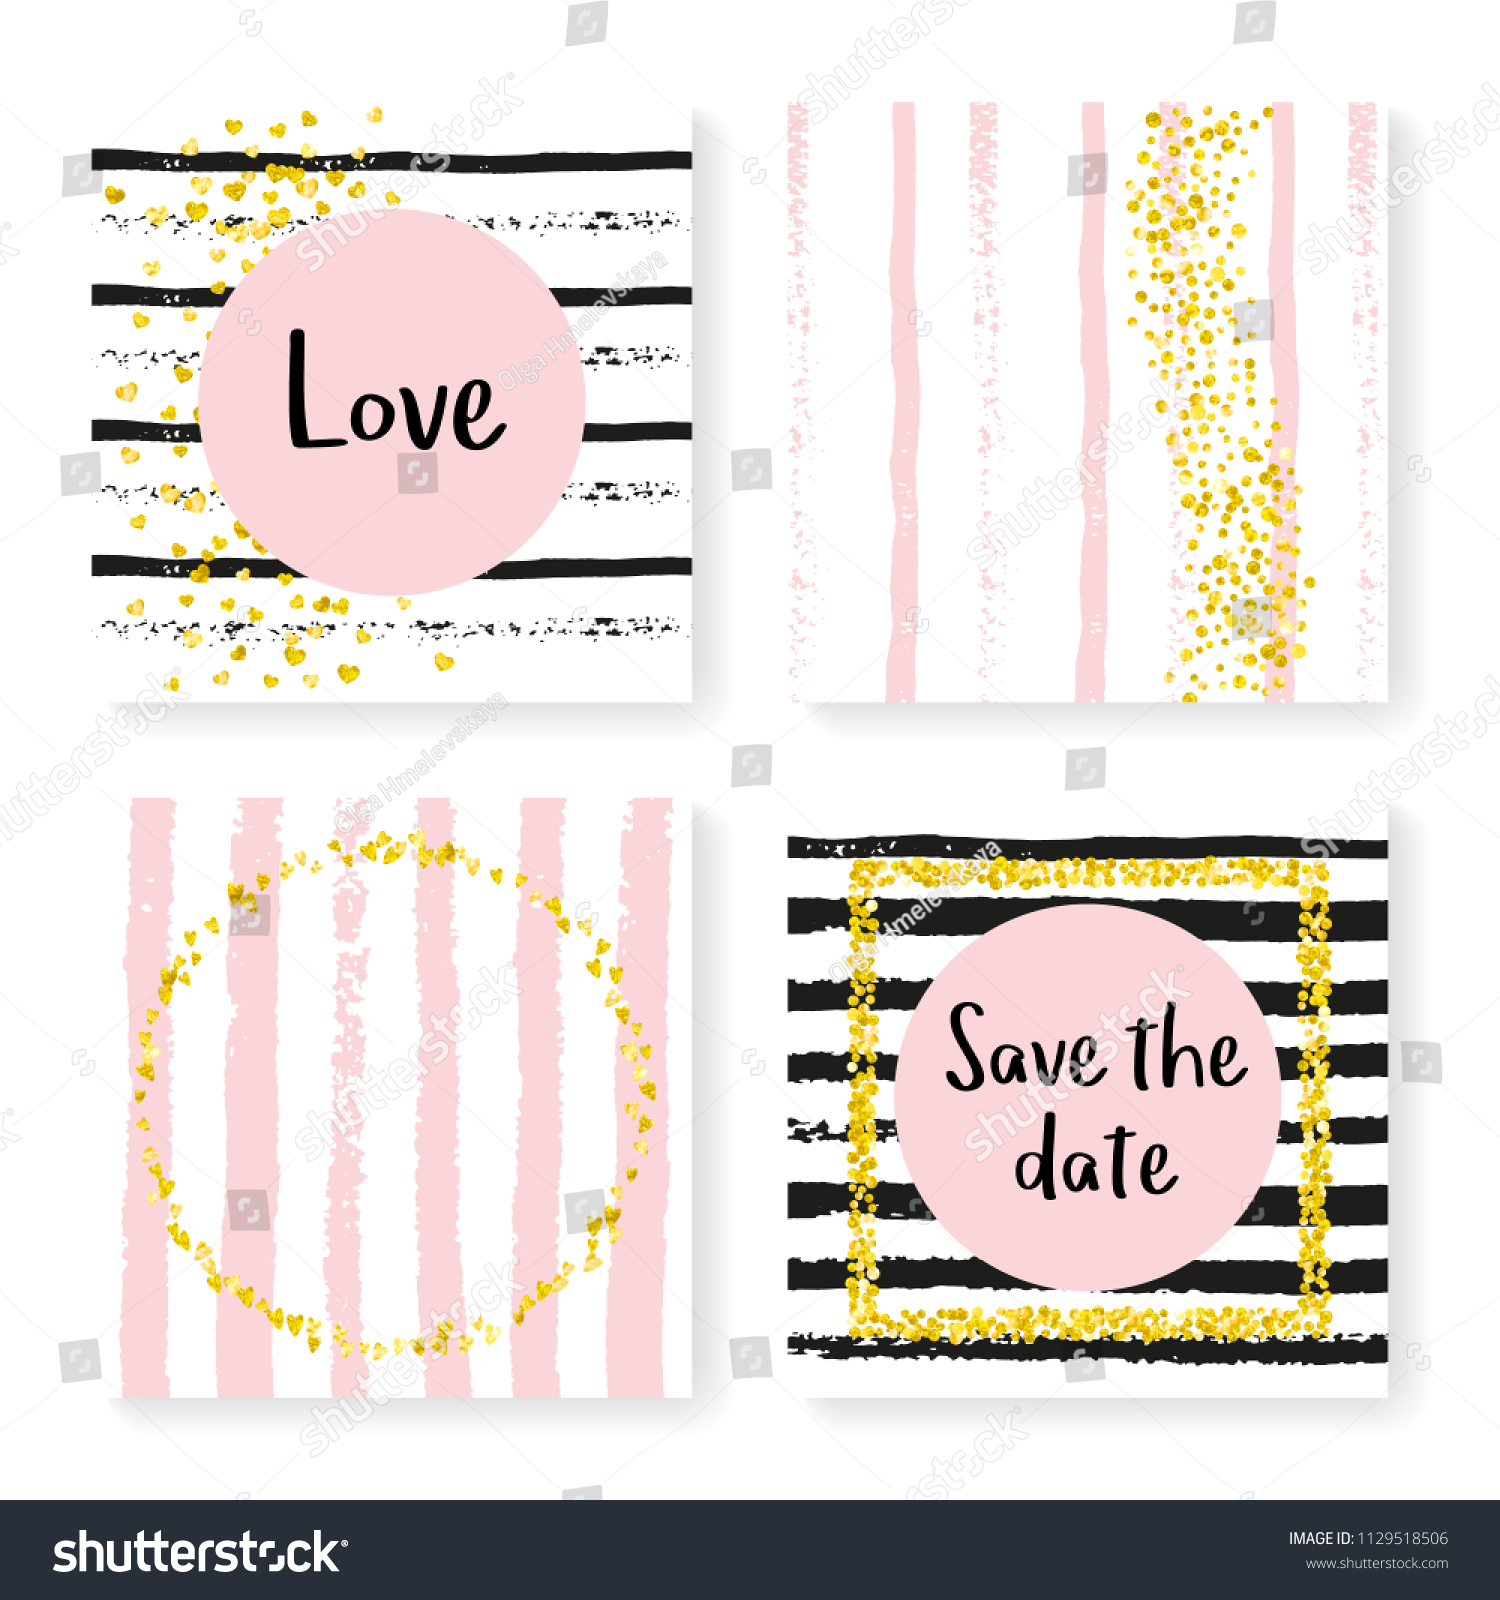 Wedding invitation set with glitter confetti and stripes. Gold hearts and  dots on black and pink background. Template with wedding invitation set for  party 5b90d3f66928